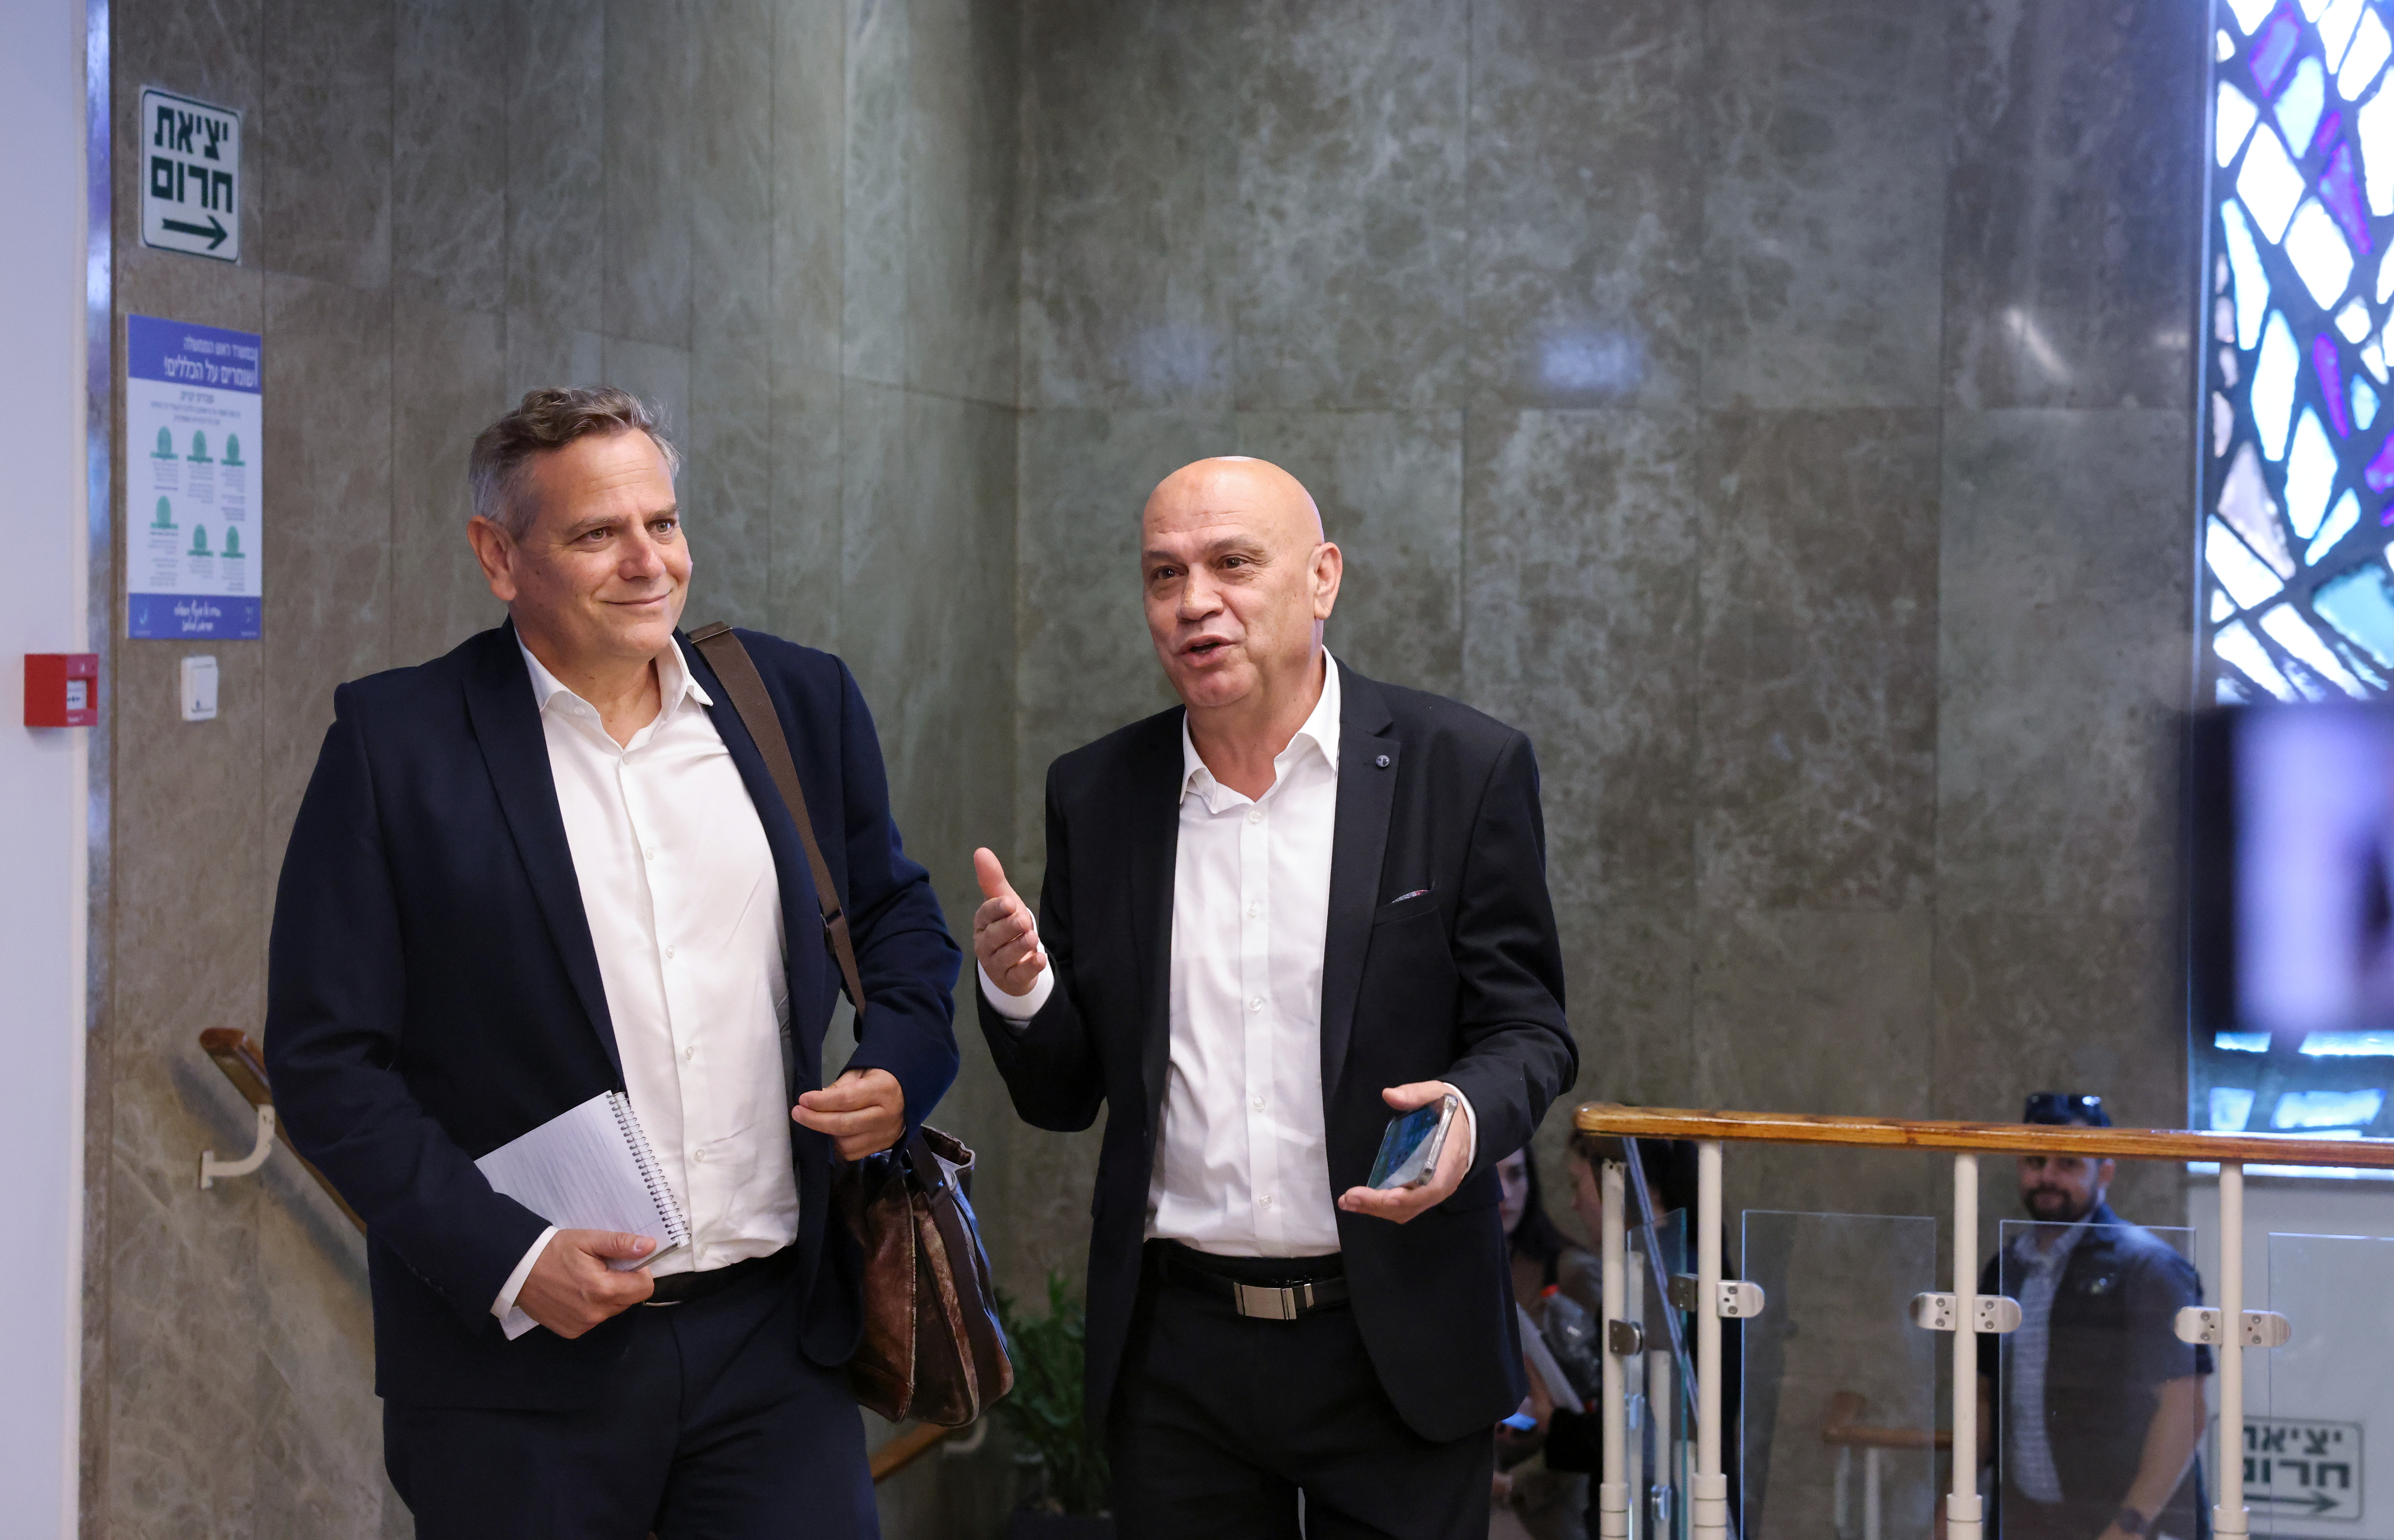 Israeli Ministers of Health Nitzan Horowitz and Regional Cooperation Issawi Frej arrive to attend the first weekly cabinet meeting of the new government in Jerusalem June 20, 2021. Emmanuel Dunand/Pool via REUTERS